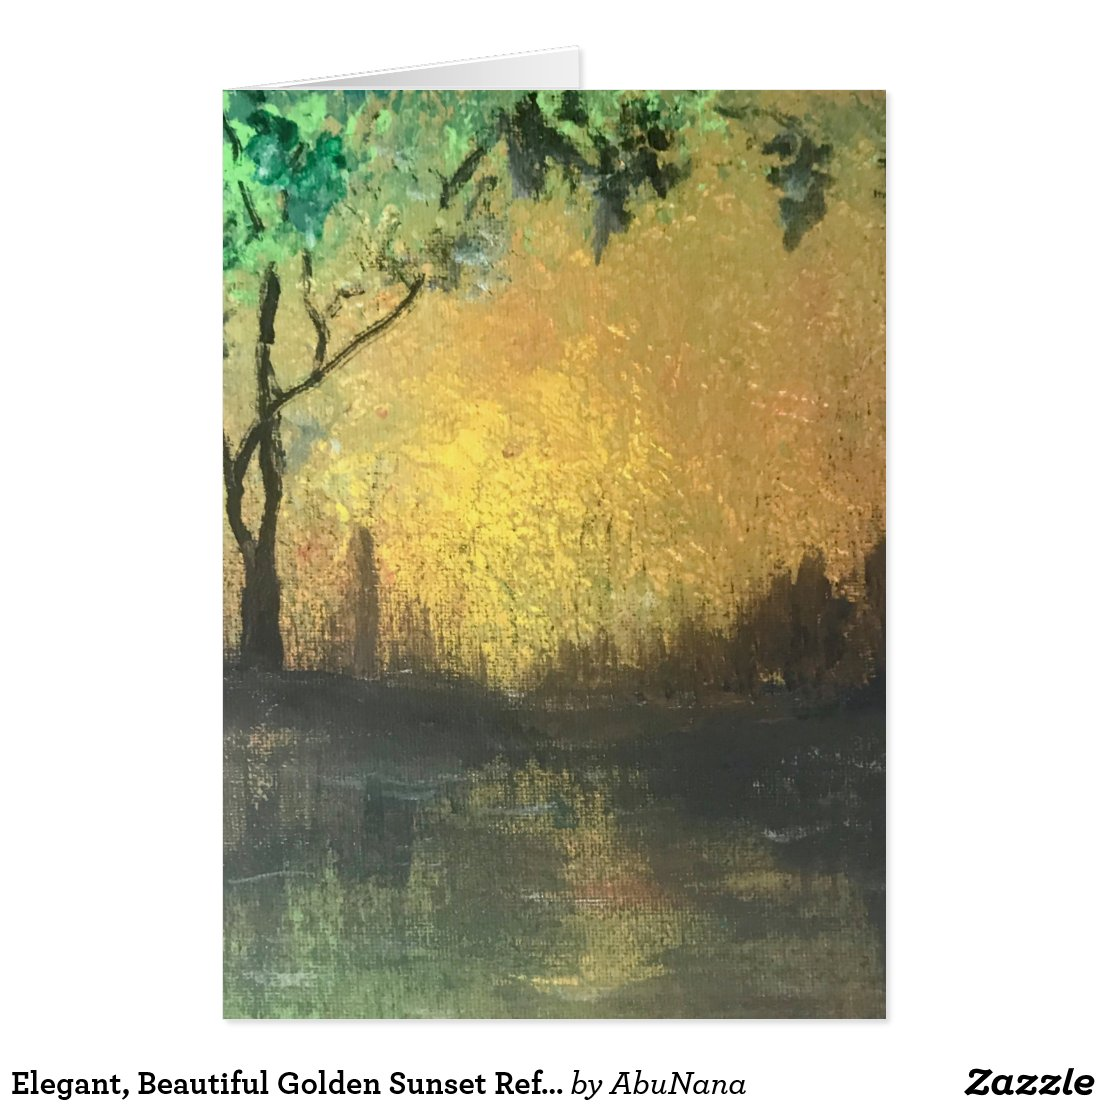 Elegant, Beautiful Golden Sunset Reflection Card